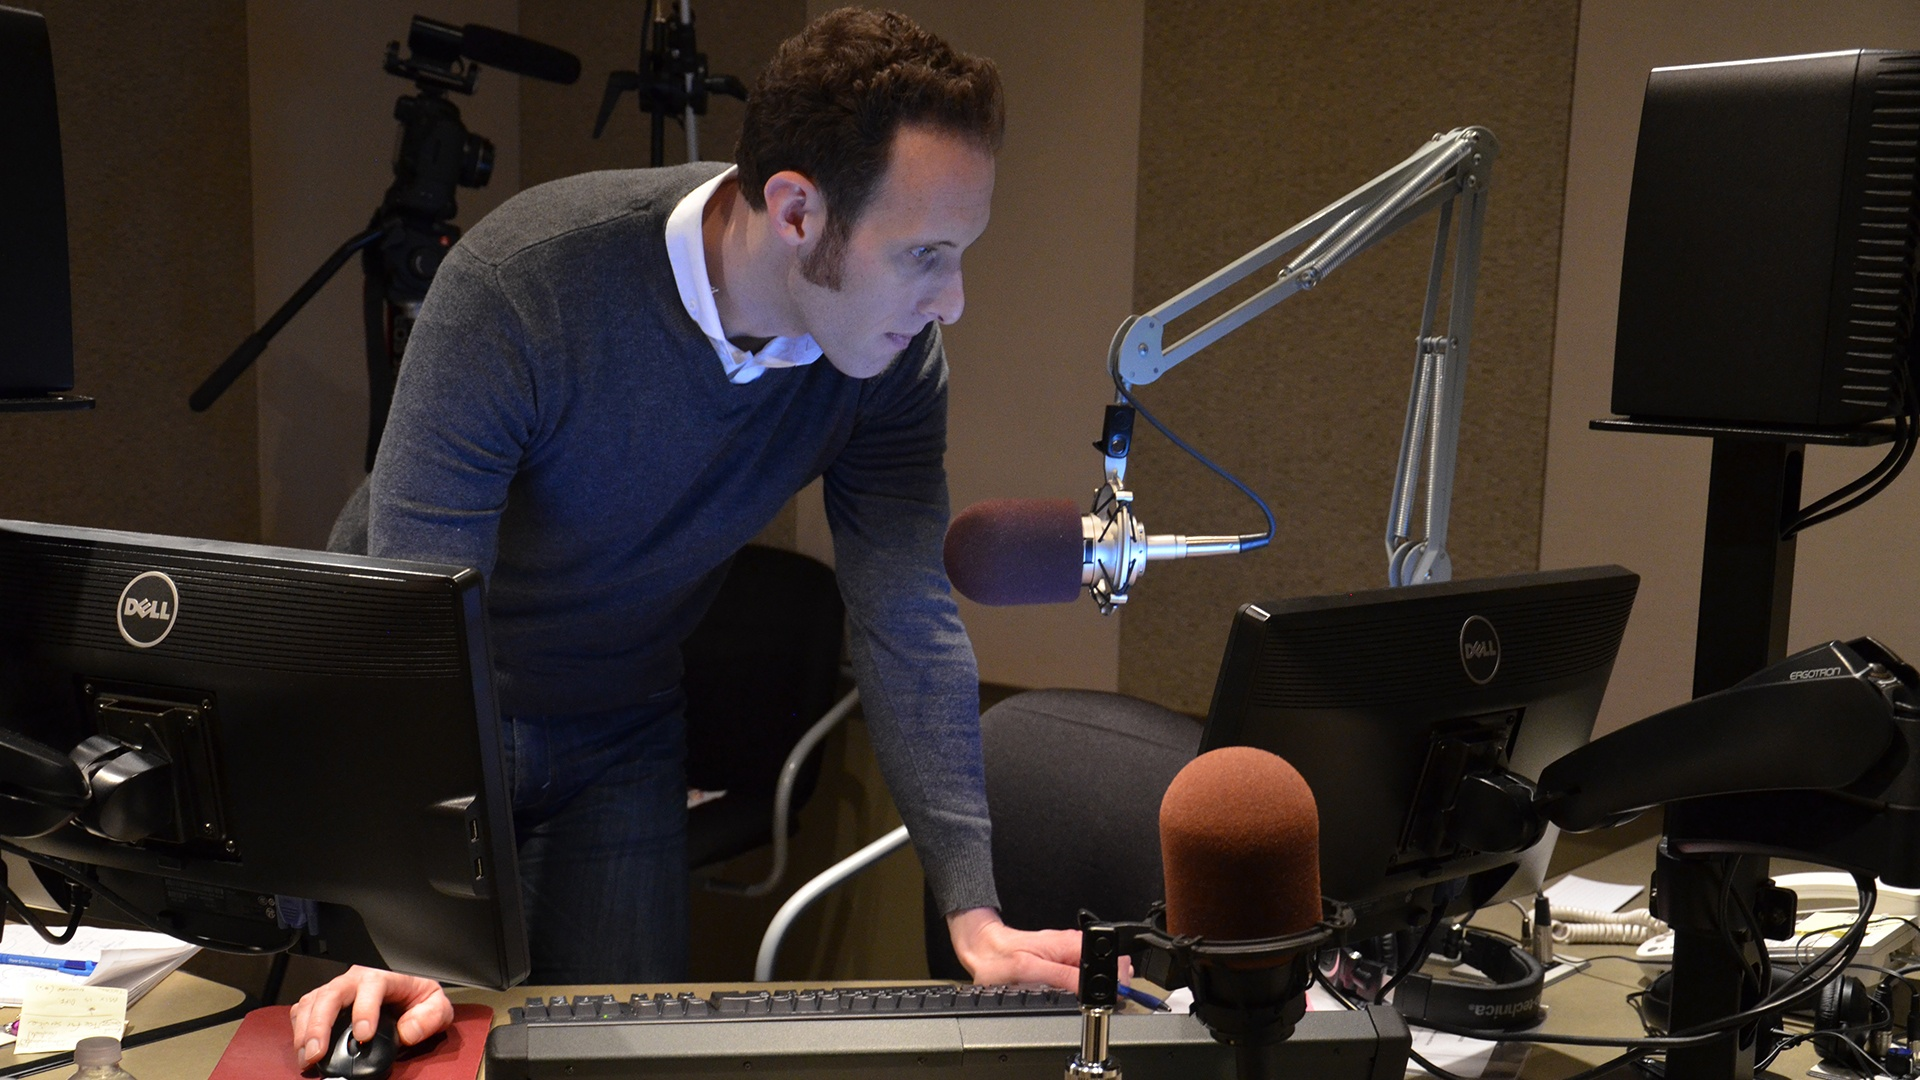 CPR host Ryan Warner can be sure his broadcasts run smoothly with the Axia Fusion and Telos VX